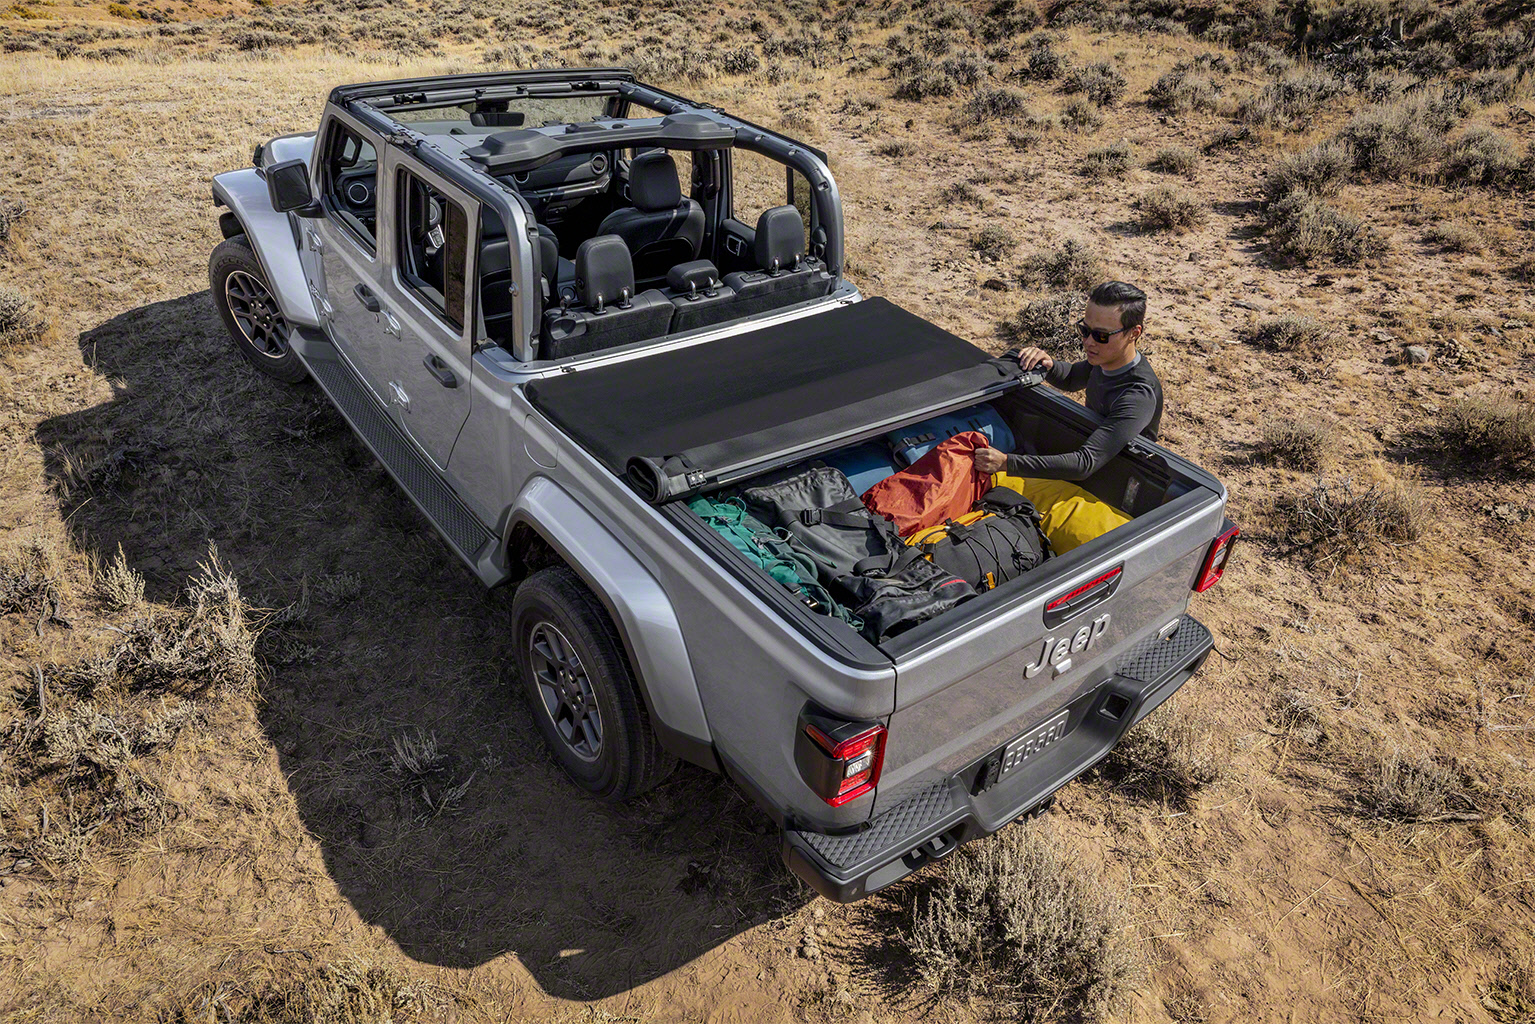 2020 Jeep Gladiator bed cover gear